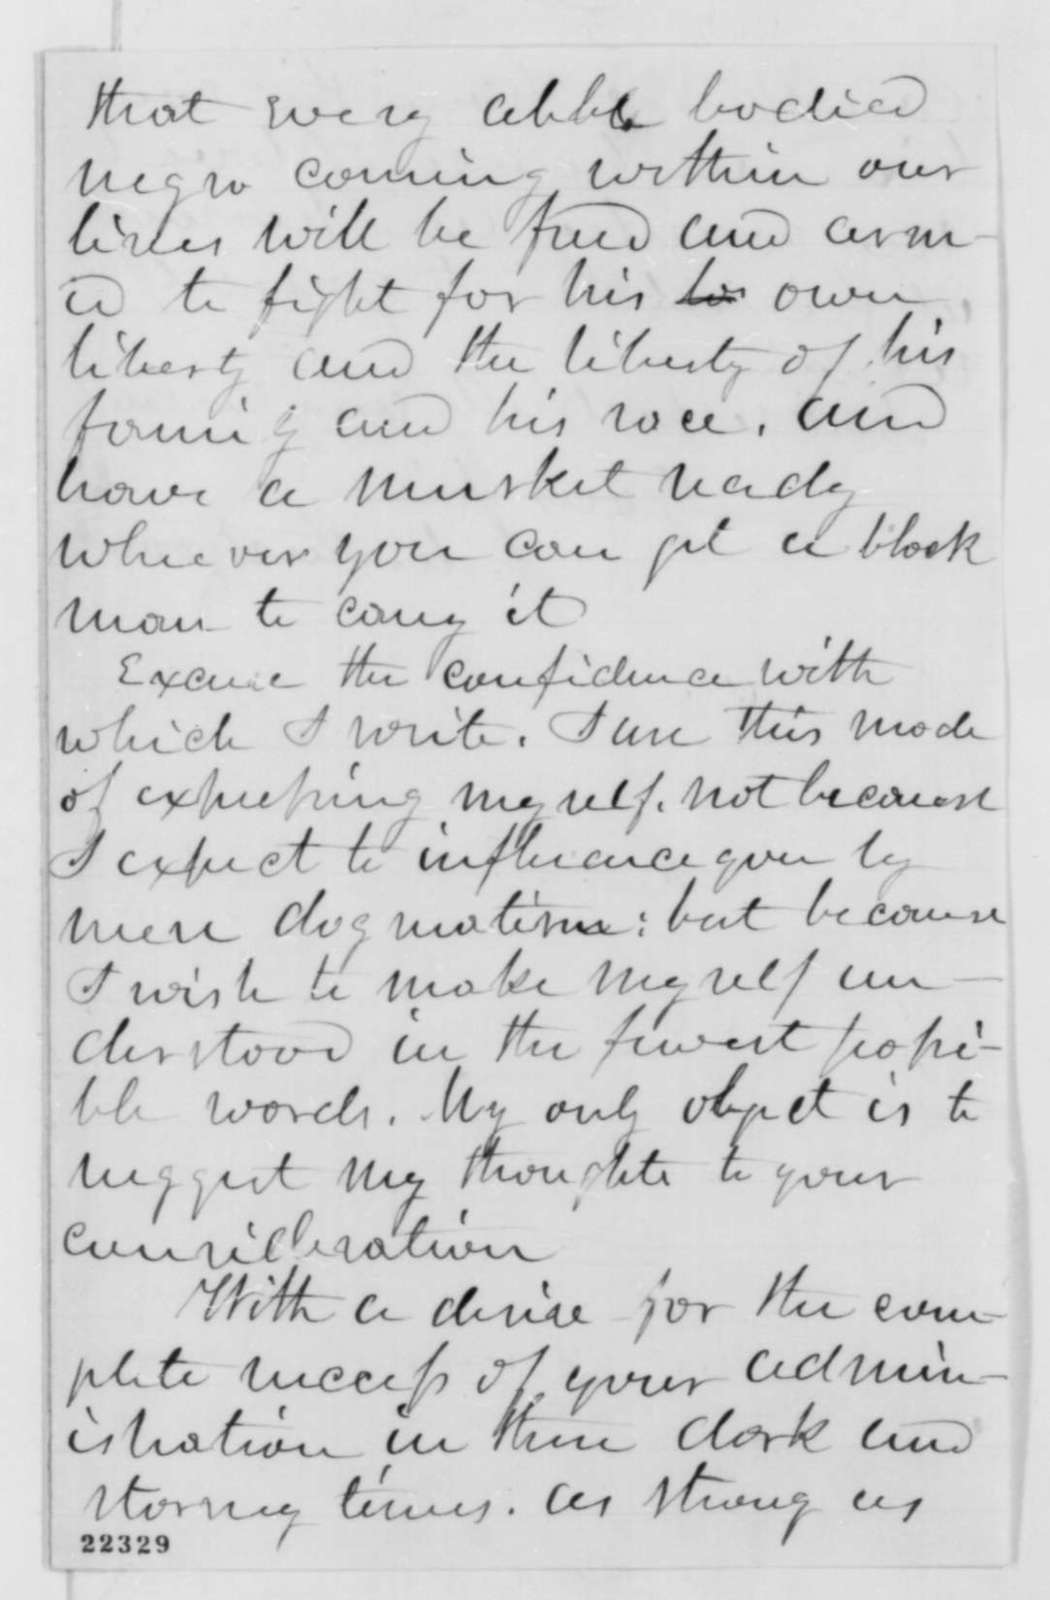 Julian M. Sturtevant to Abraham Lincoln, Tuesday, March 10, 1863  (Urges the enlistment of freedmen)